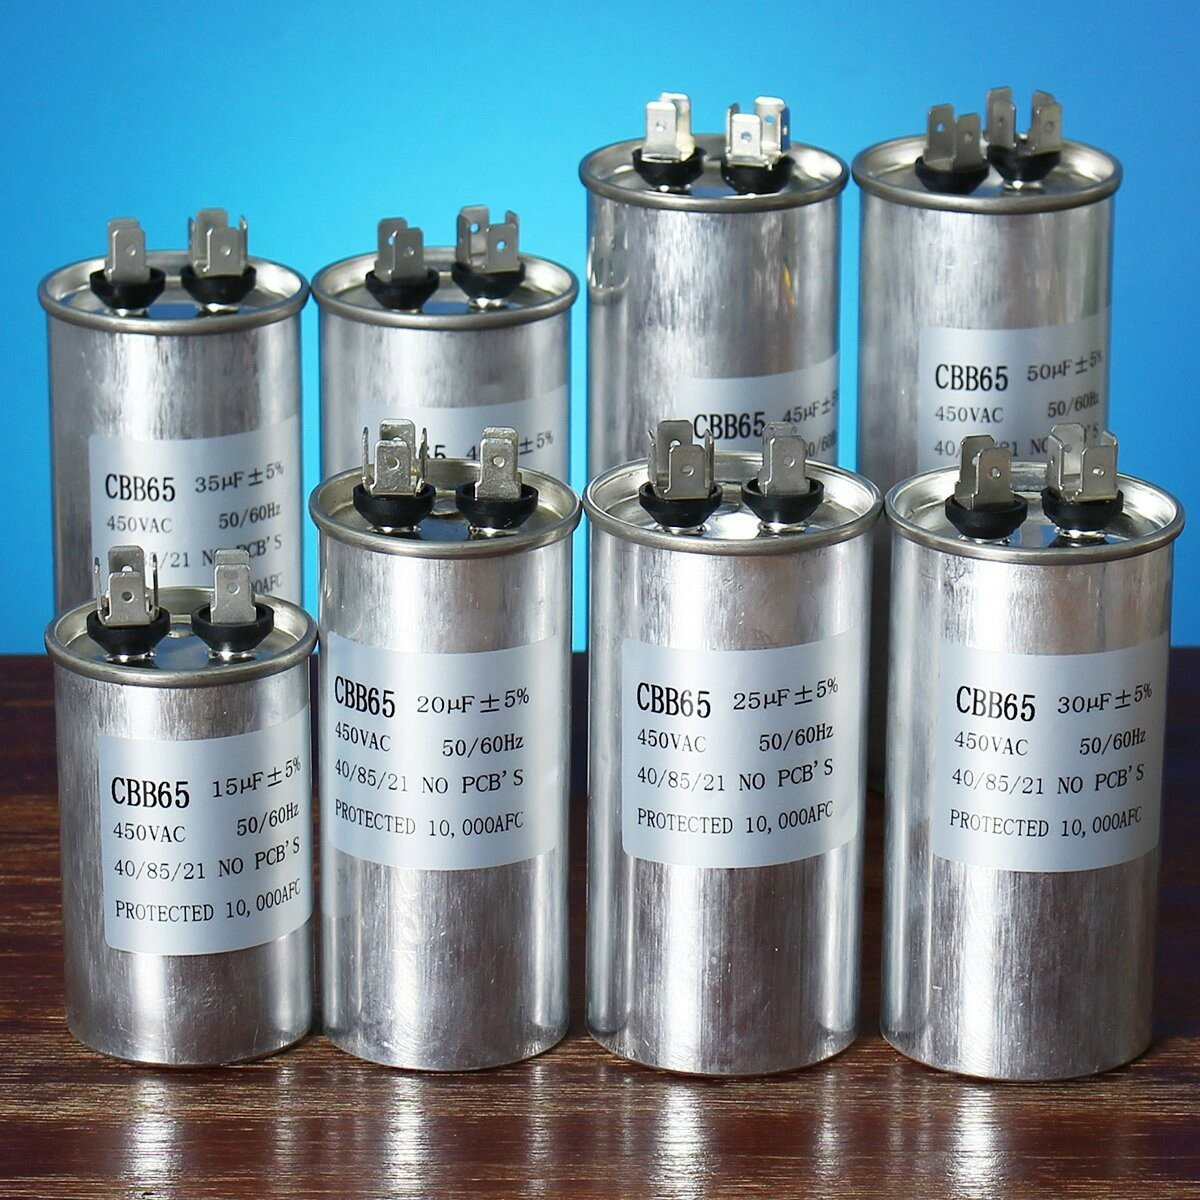 15-50uF Motor Capacitor CBB65 450VAC Air Conditioner Compressor ...